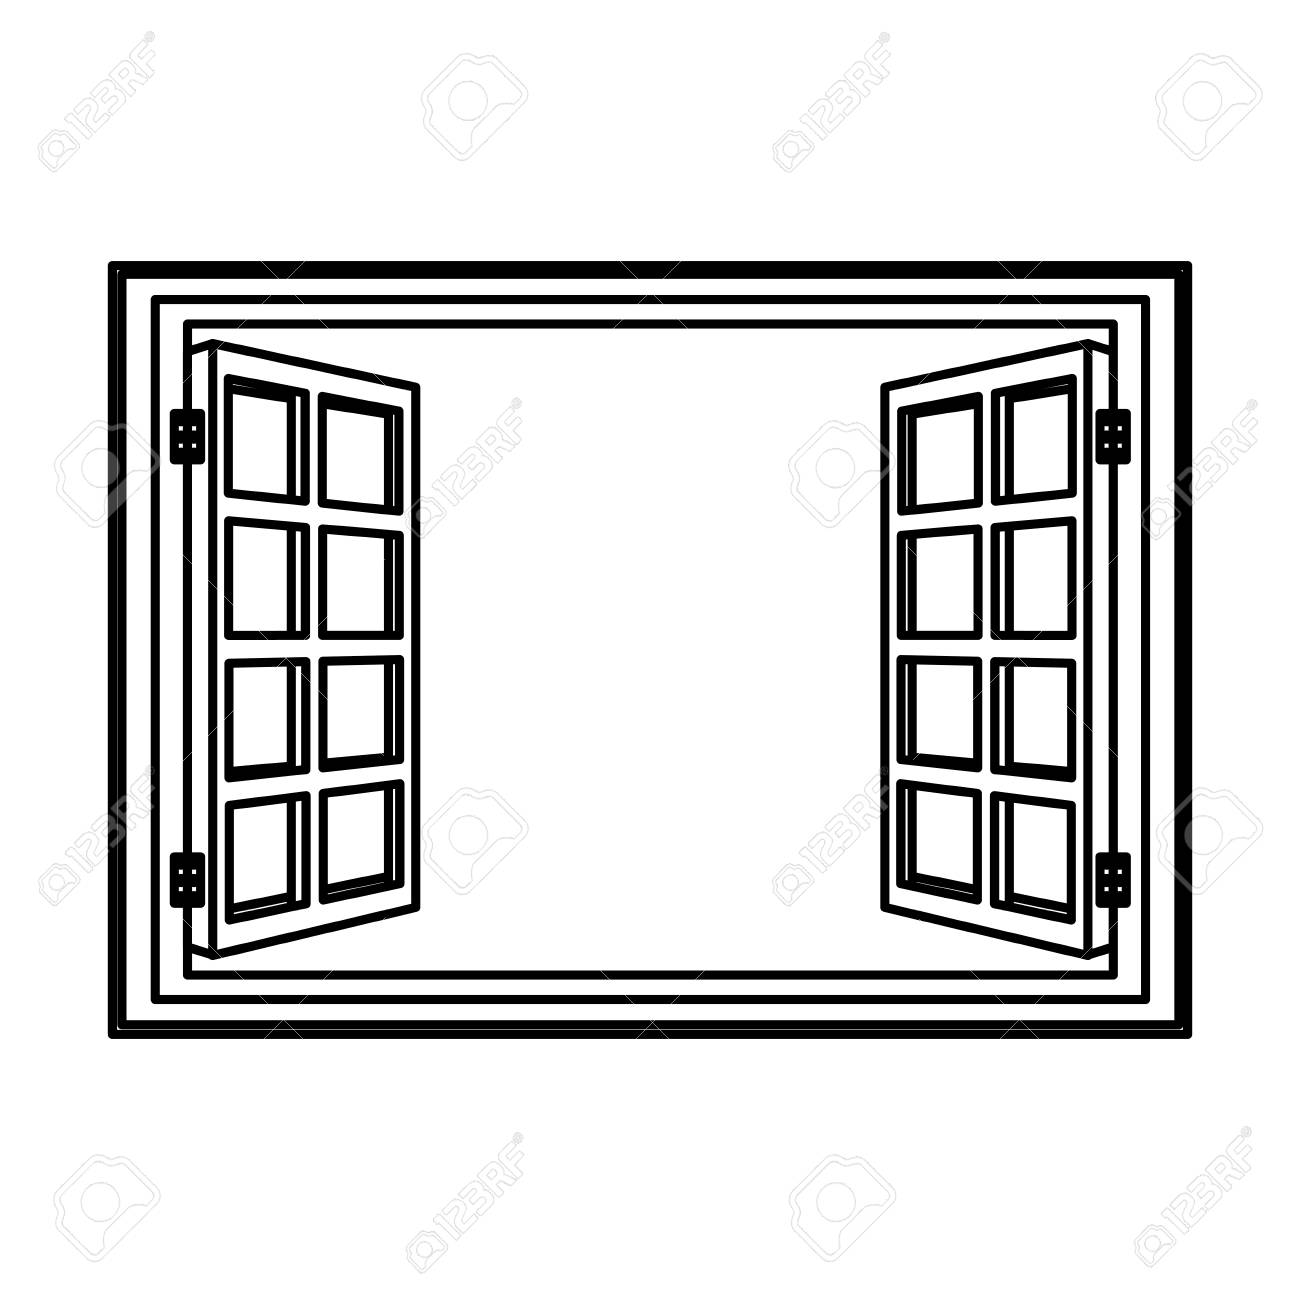 Open Window Frame Wooden Image Vector Illustration Royalty Free ...